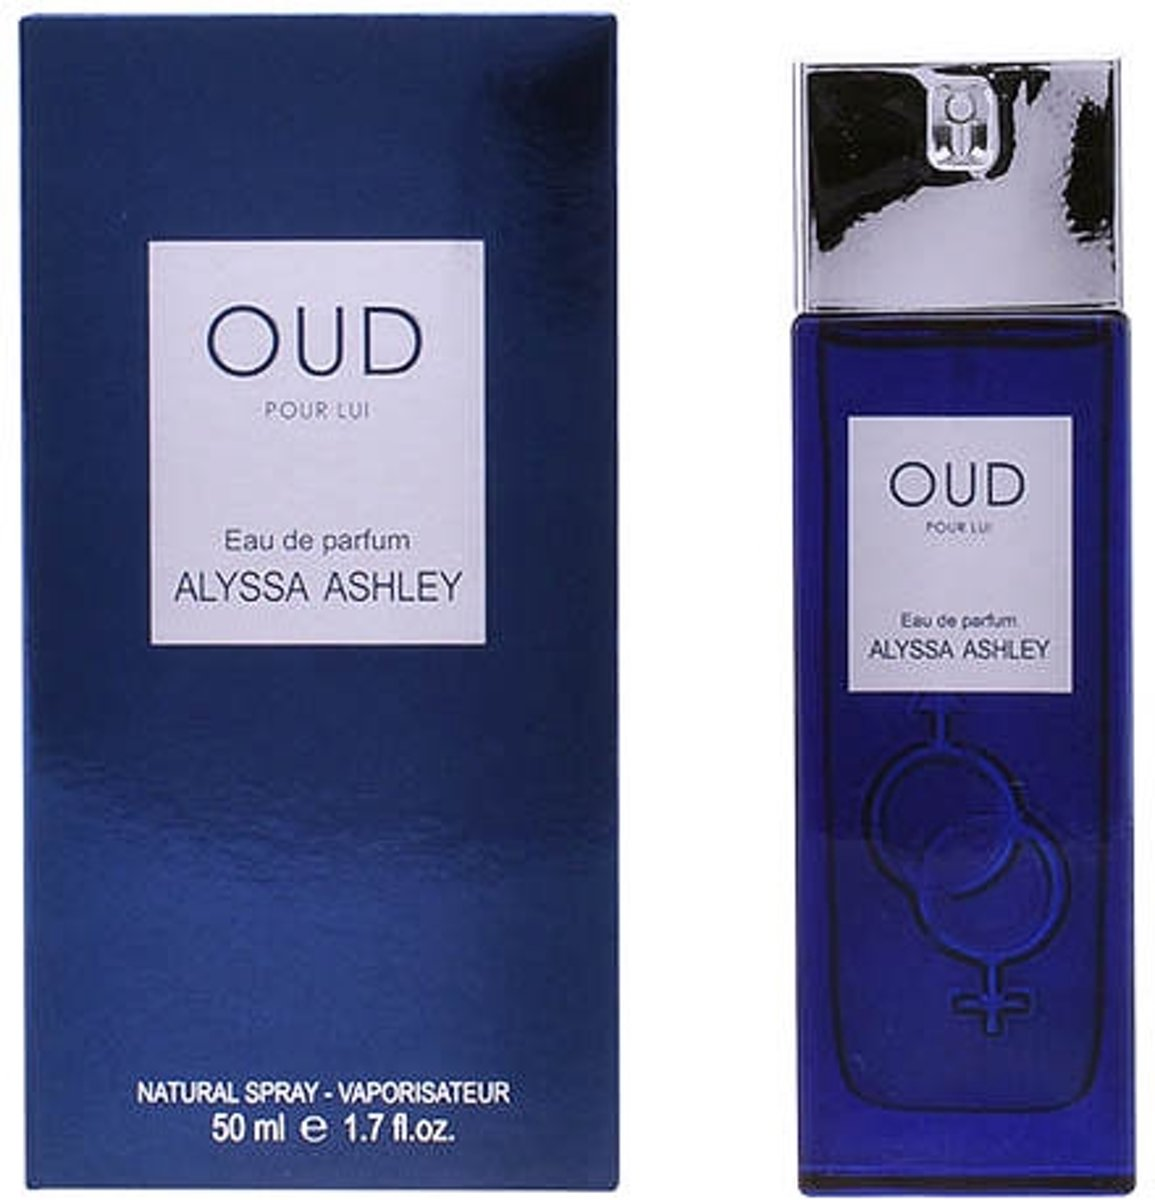 Alyssa Ashley - OUD POUR LUI edp 50 ml